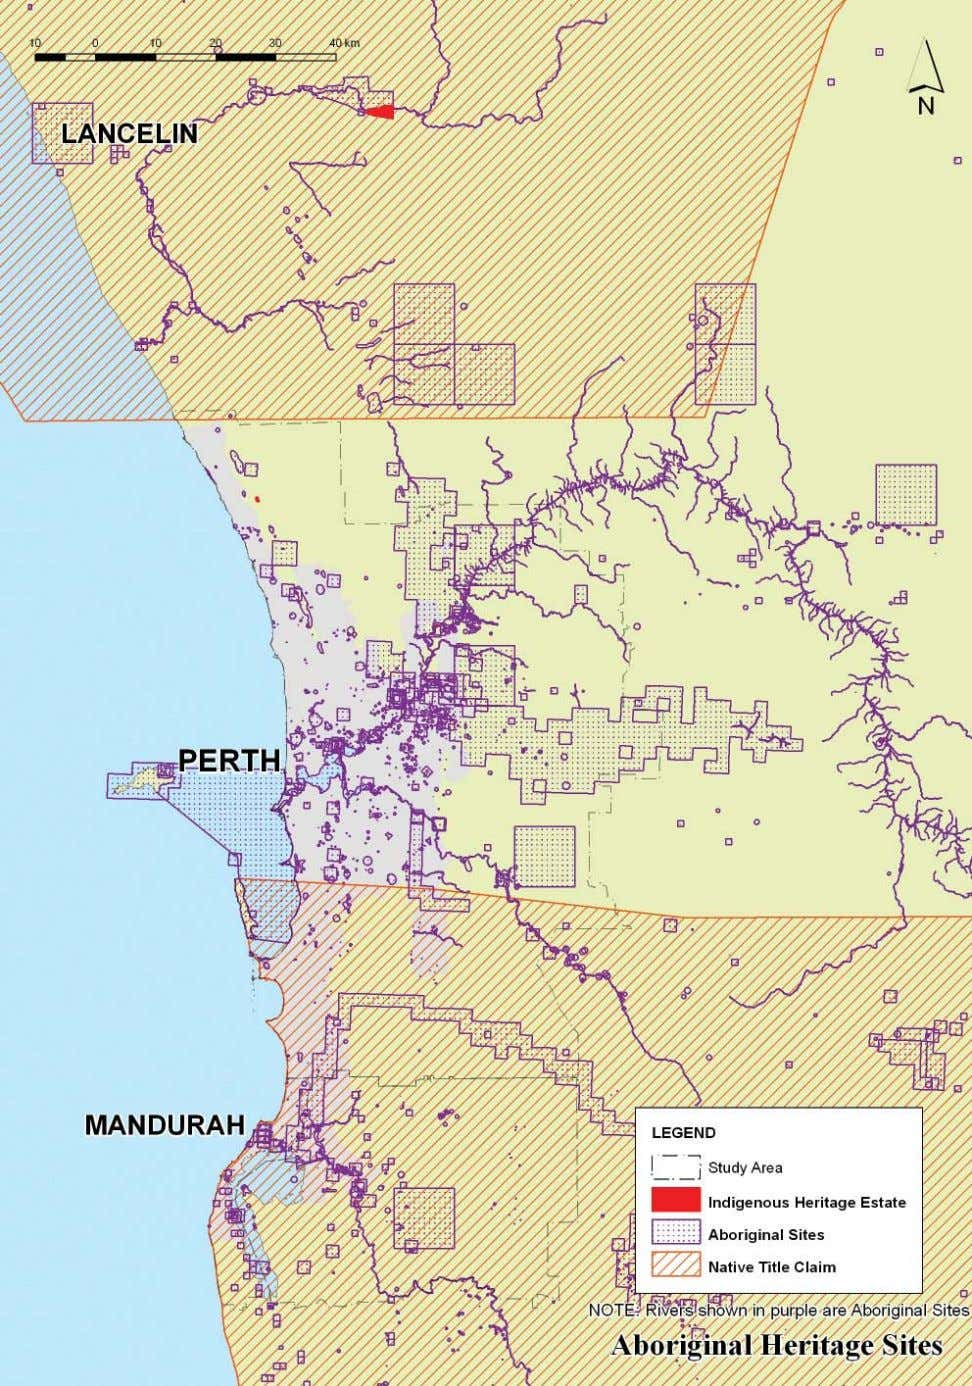 ABORIGINAL HERITAGE SITES AND NATIVE TITLE CLAIM AREAS IN THE PERTH - MANDURAH REGION OPTIONS FOR